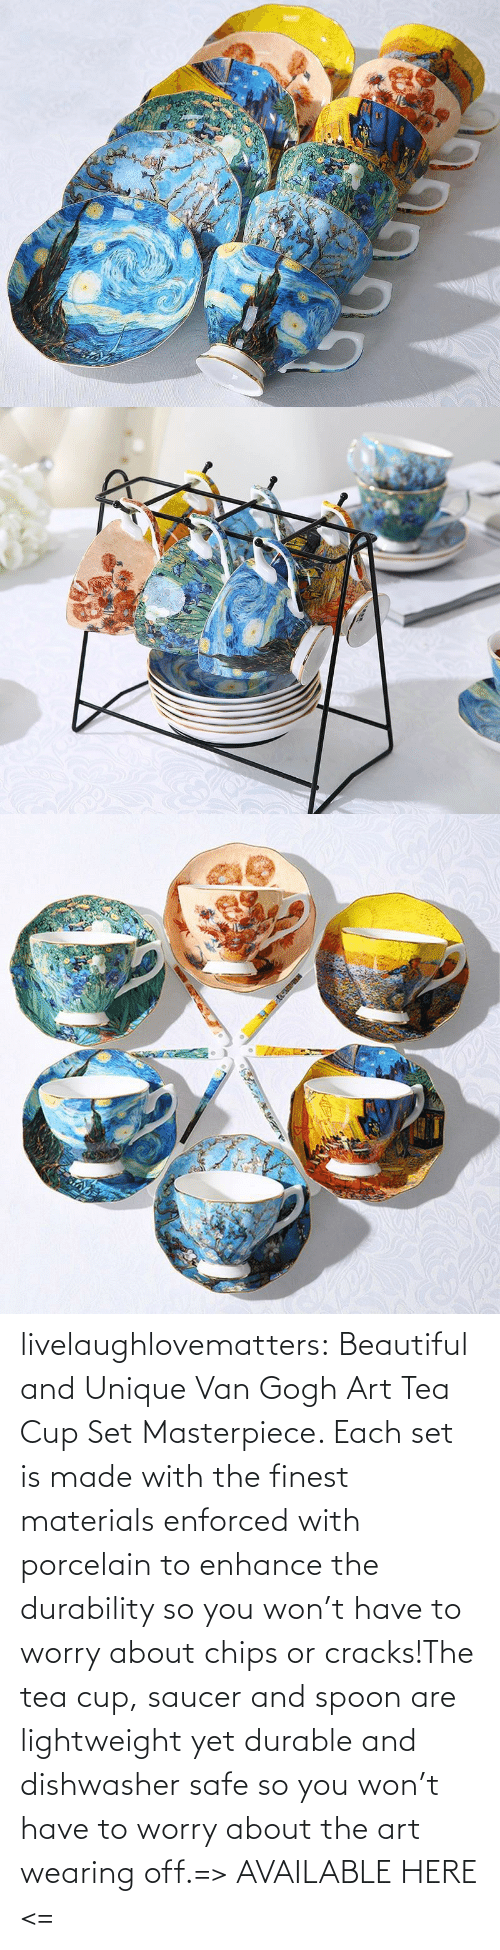 Beautiful, Tumblr, and Blog: livelaughlovematters:  Beautiful and Unique Van Gogh Art Tea Cup Set Masterpiece. Each set is made with the finest materials enforced with porcelain to enhance the durability so you won't have to worry about chips or cracks!The tea cup, saucer and spoon are lightweight yet durable and dishwasher safe so you won't have to worry about the art wearing off.=> AVAILABLE HERE <=